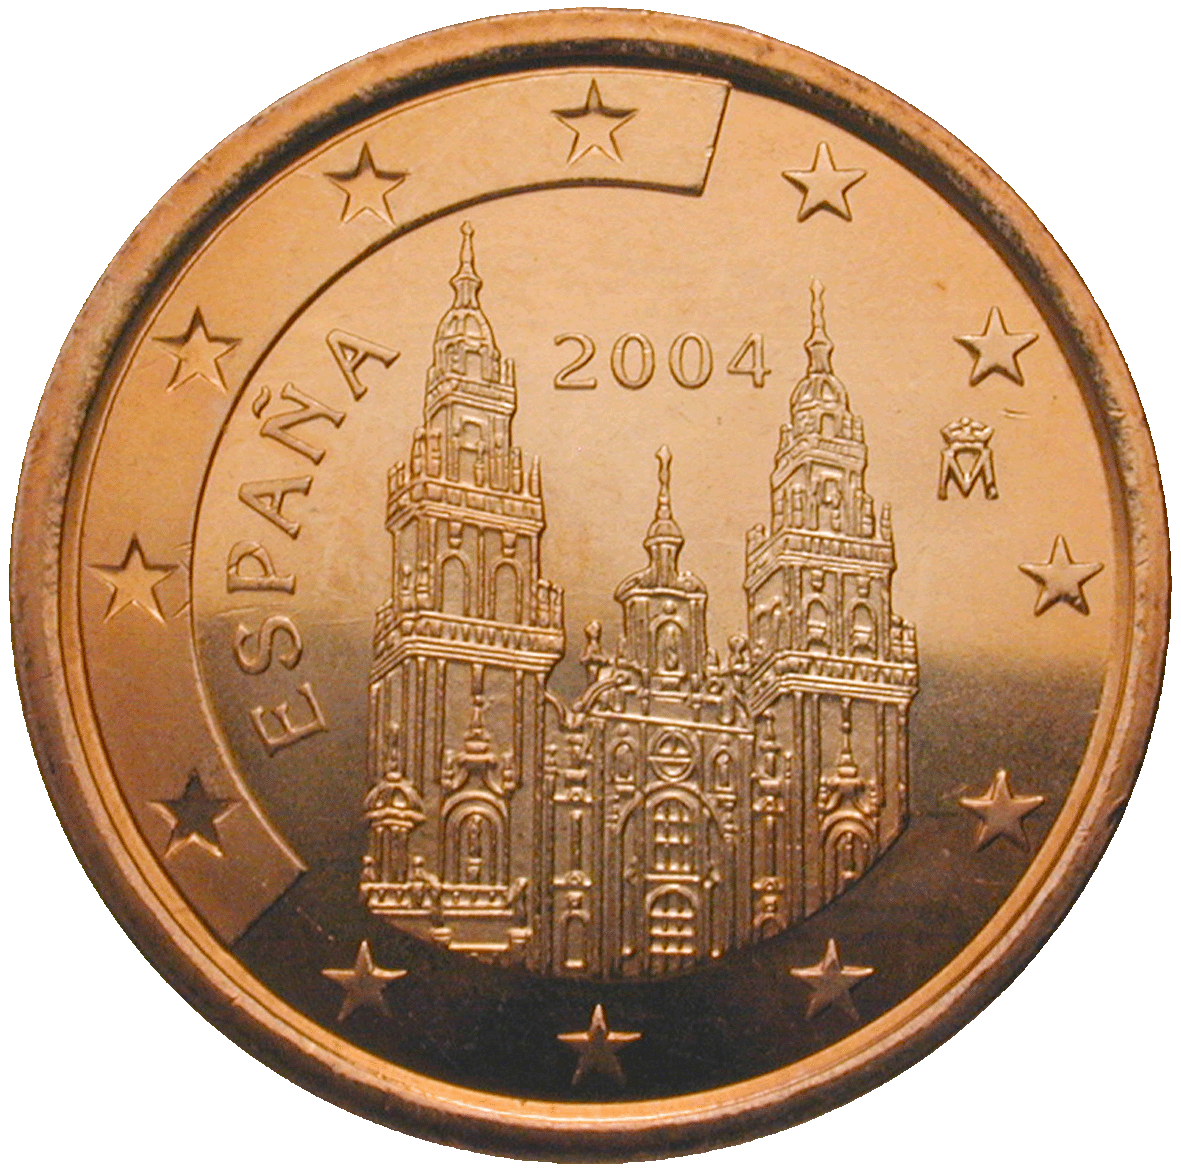 Kingdom of Spain, Juan Carlos, 5 Euro Cent 2004 (obverse)